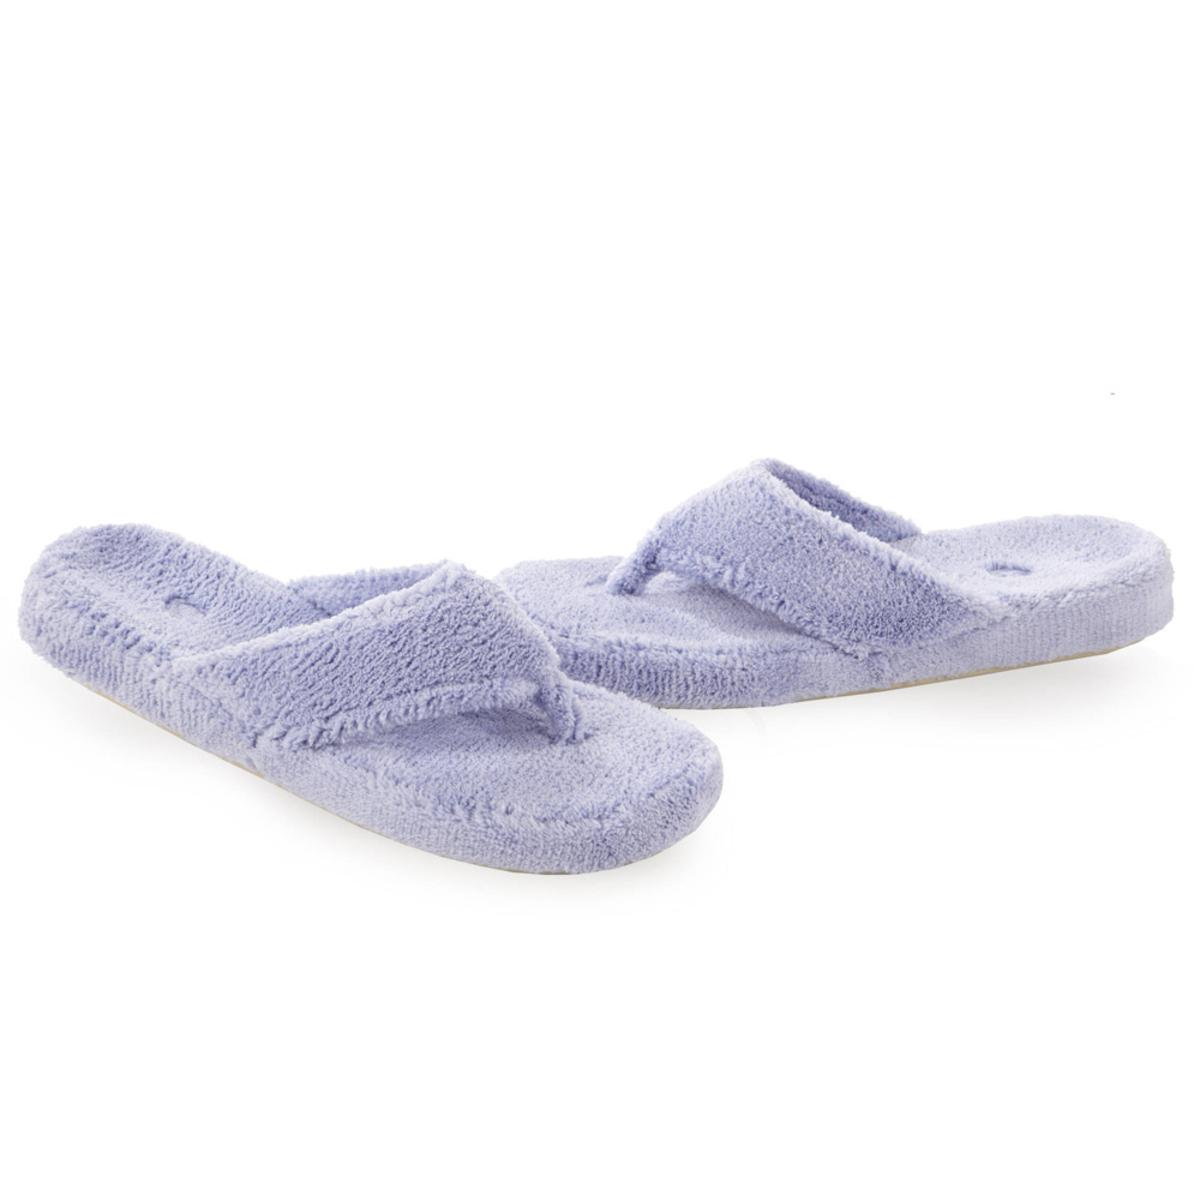 f0dec382dcba ACORN Women s Spa Thong Slippers - Periwinkle - The Warming Store